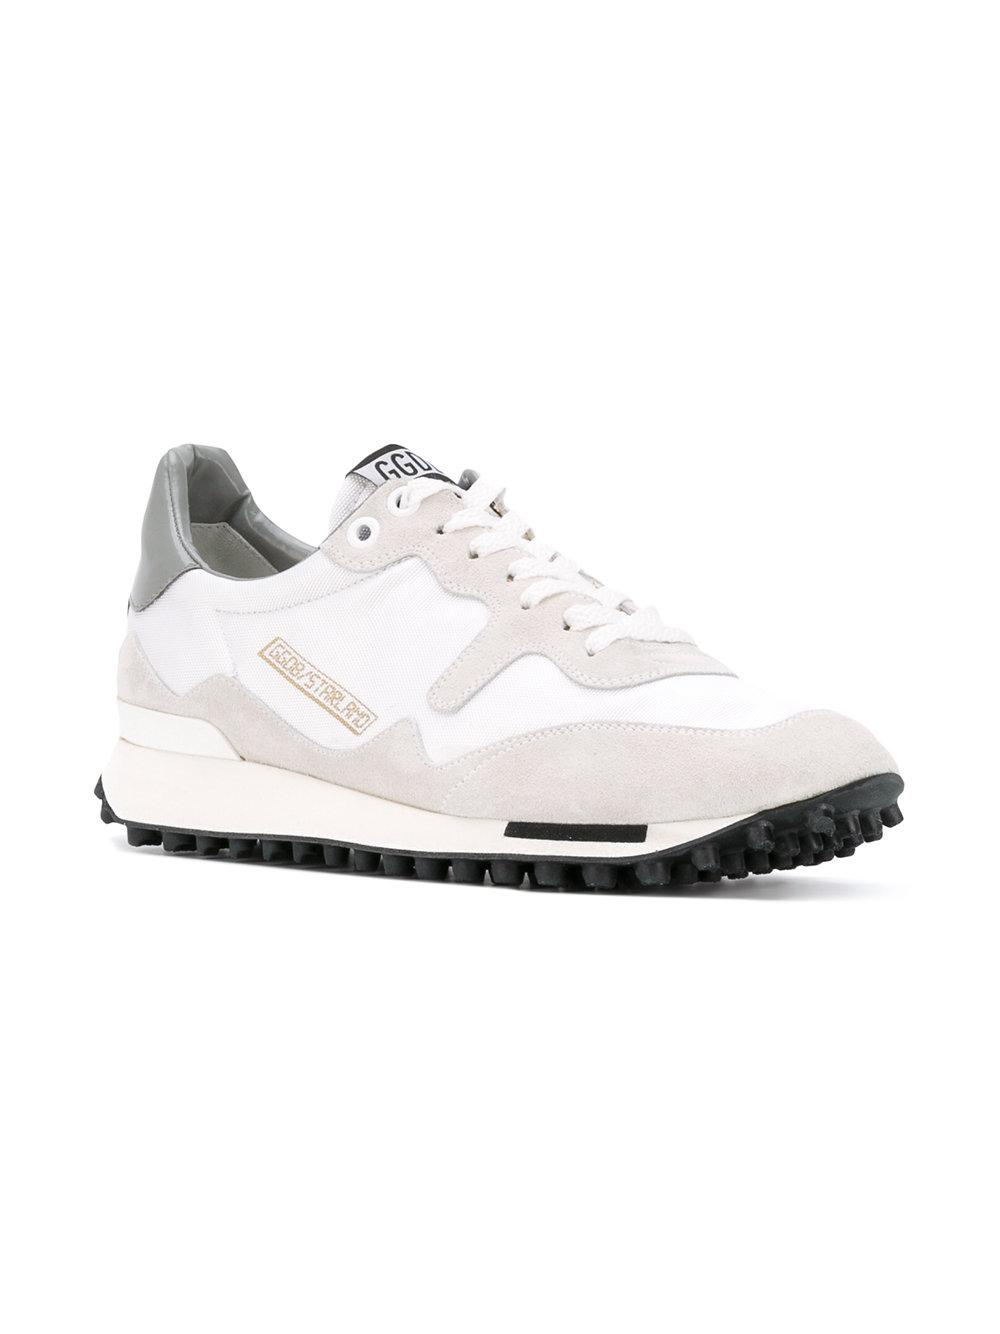 Golden Goose Deluxe Brand Leather Starland Sneakers in White